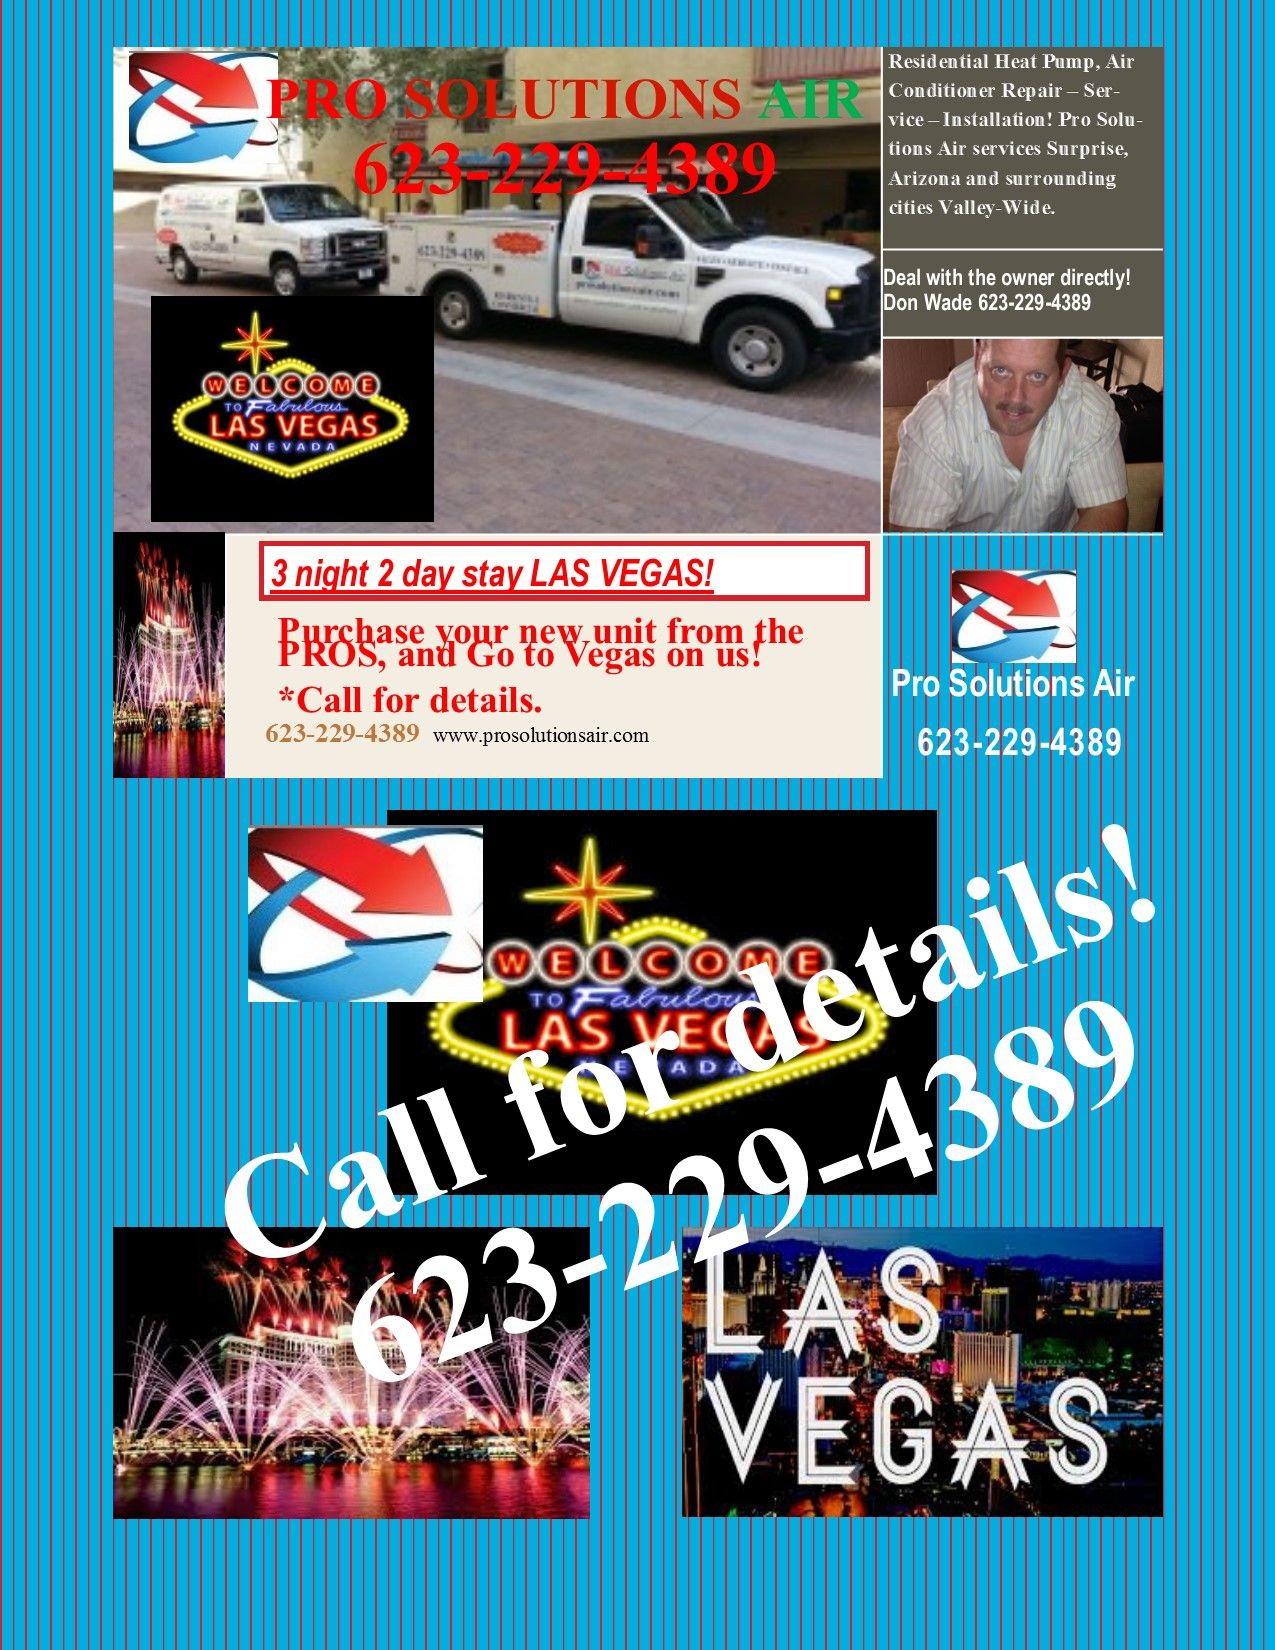 Free Trip to Vegas from Pro Solutions Air. Call for